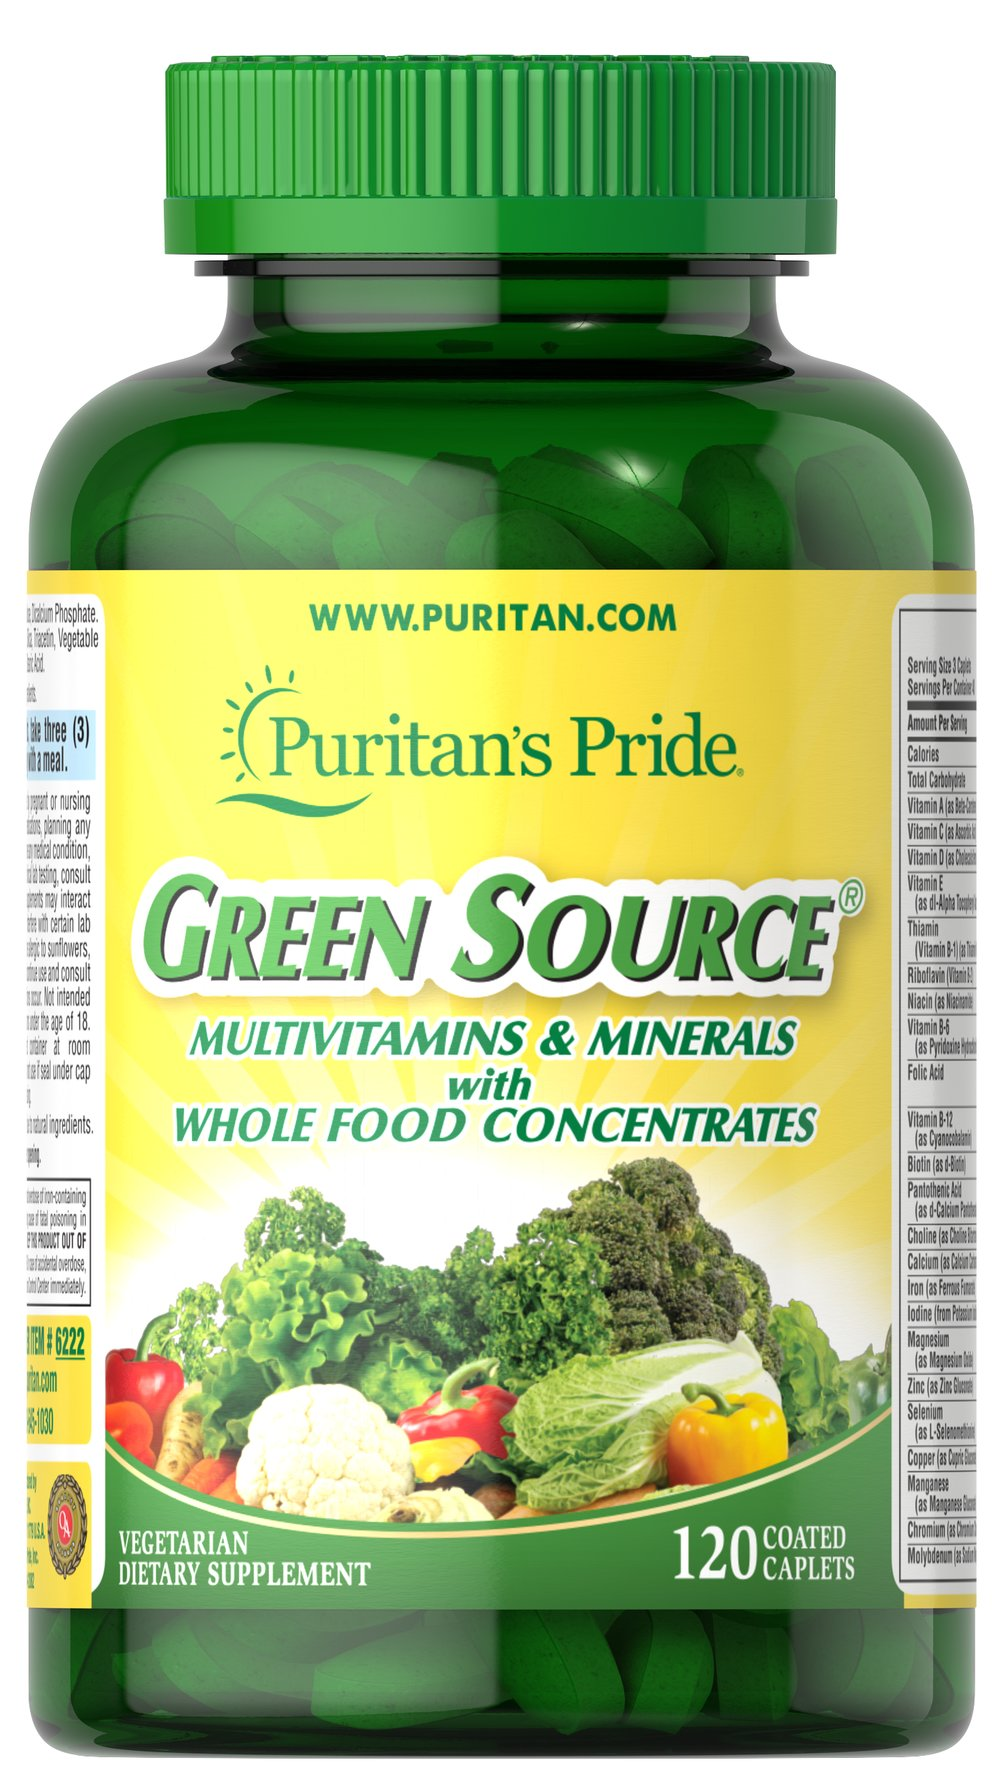 Green Source® Multivitamin & Minerals <p>This concentrated formula contains potent food source nutrients to provide essential vitamins, minerals, enzymes and amino acids. It also provides all the naturally occurring active constituents of whole foods.</p> 120 Caplets  $17.49